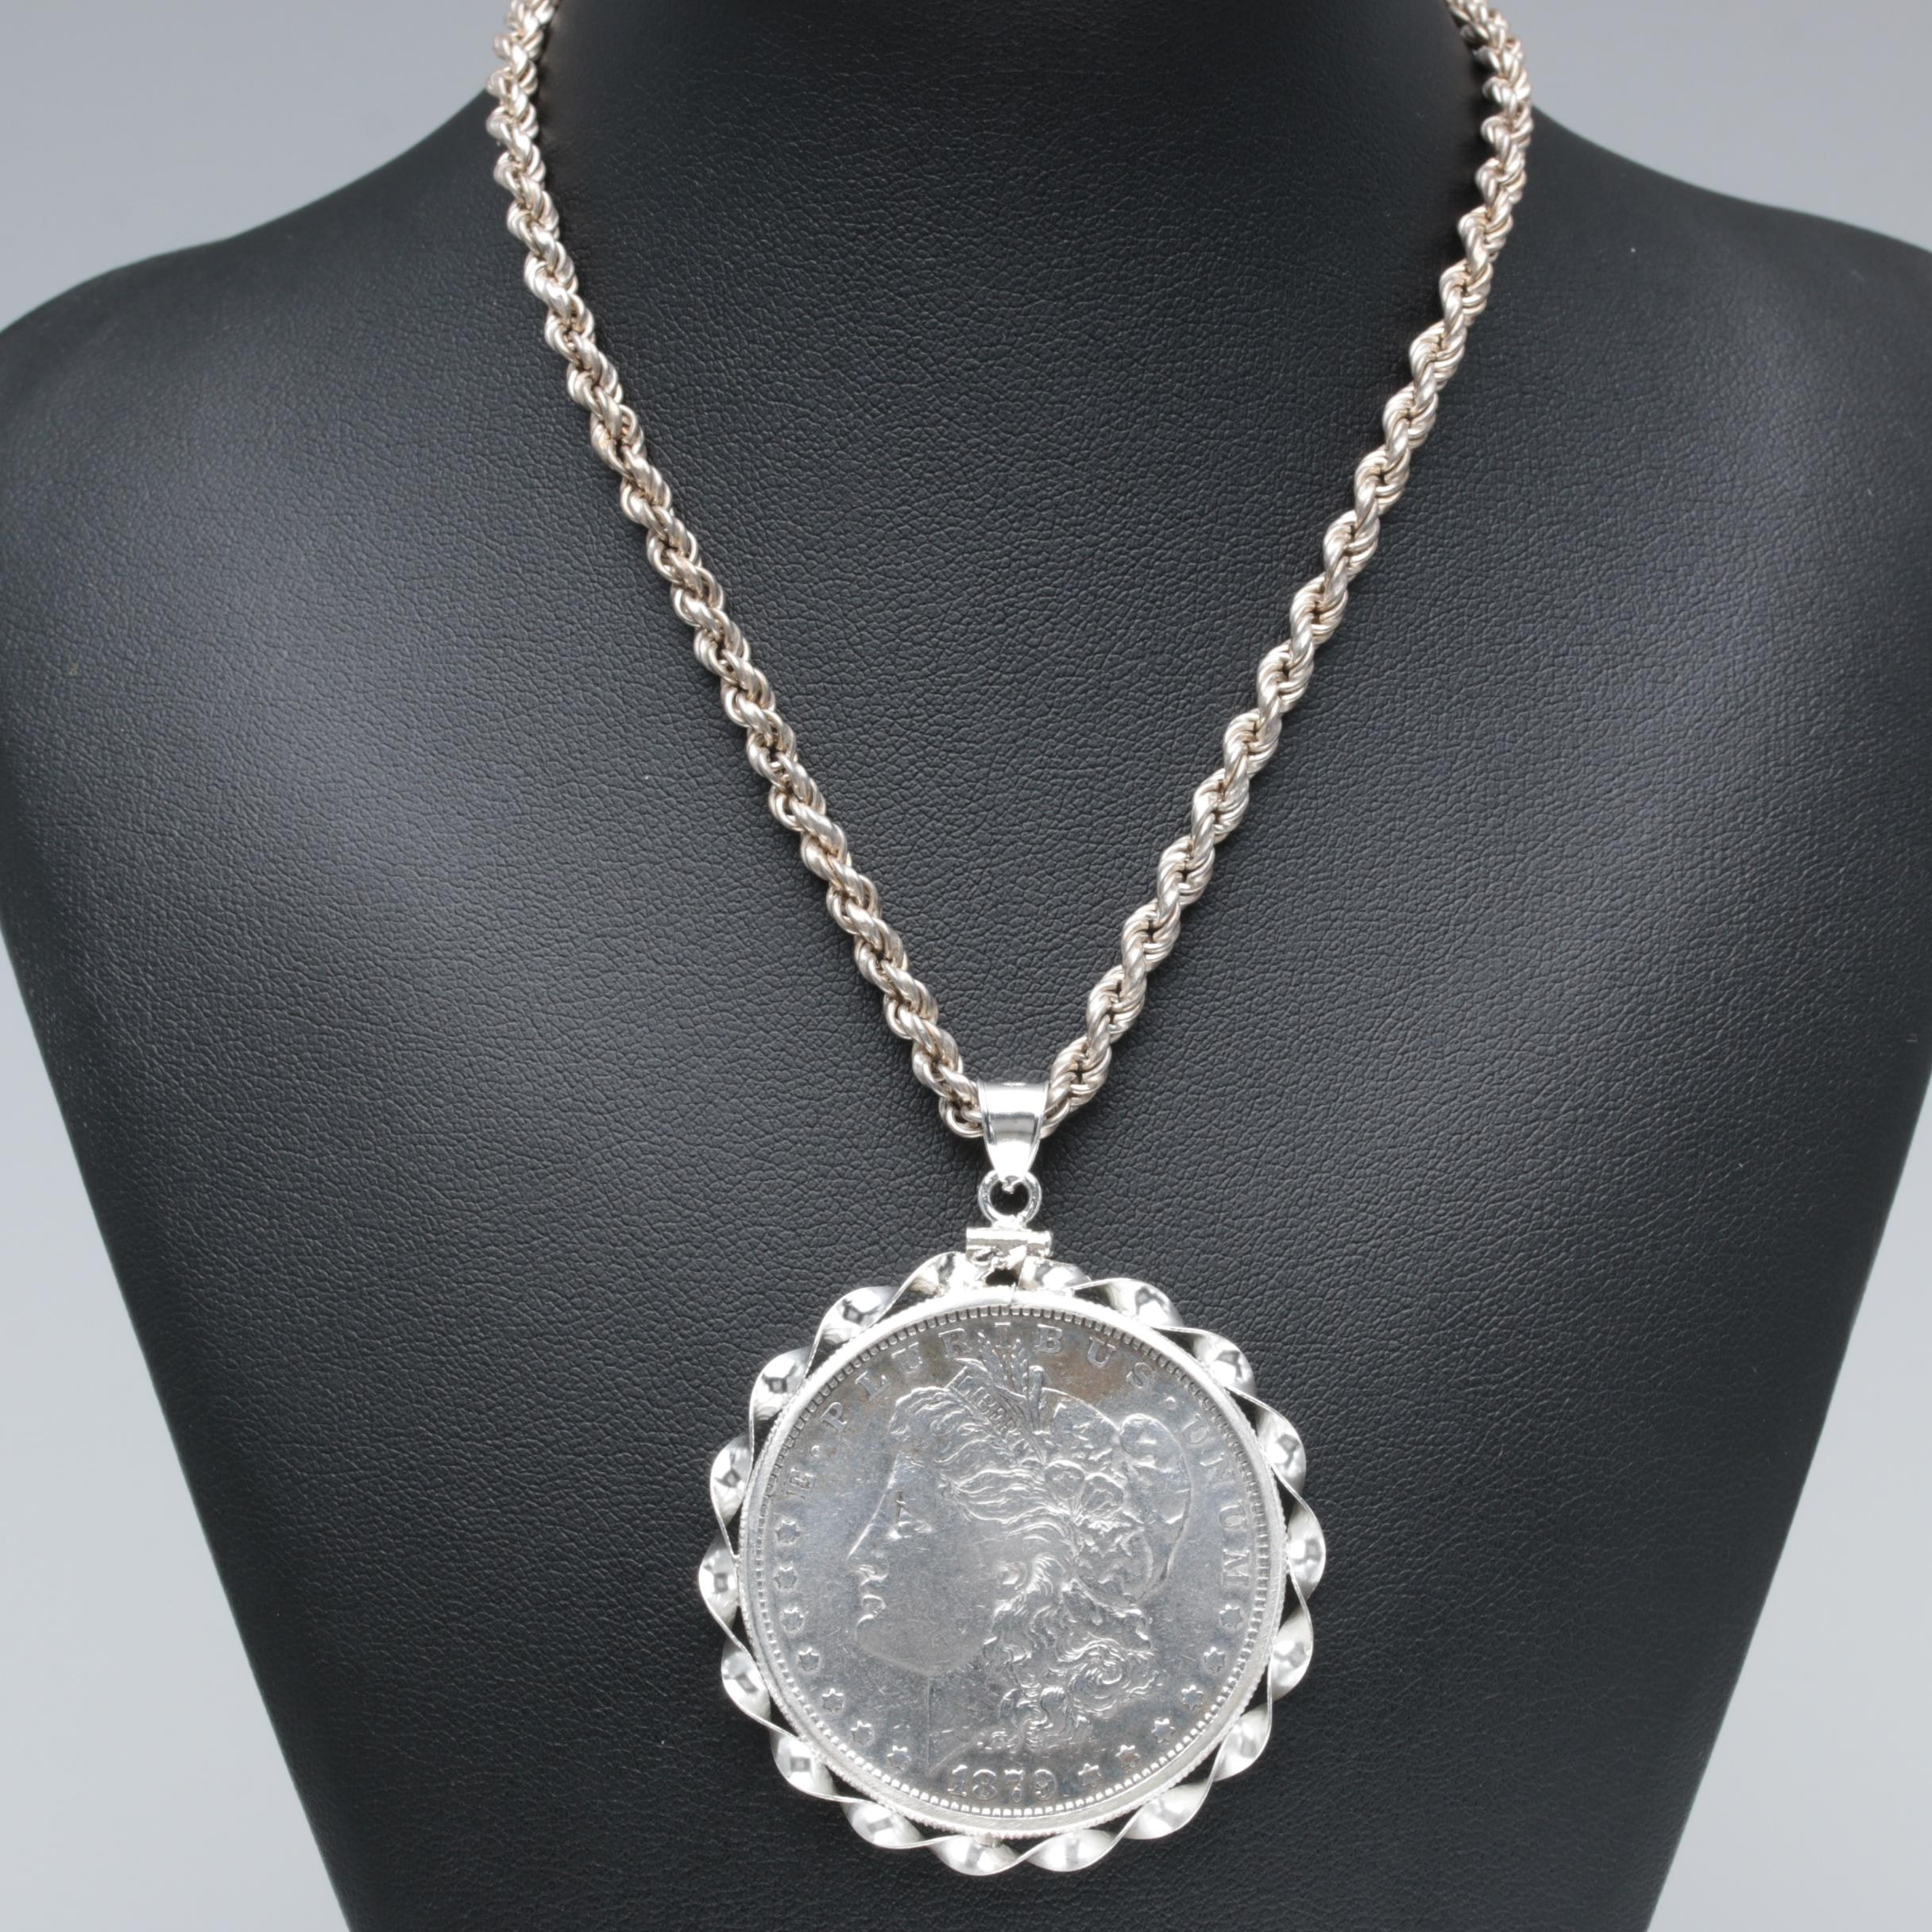 Sterling Silver Necklace with 1879 Morgan Silver Dollar